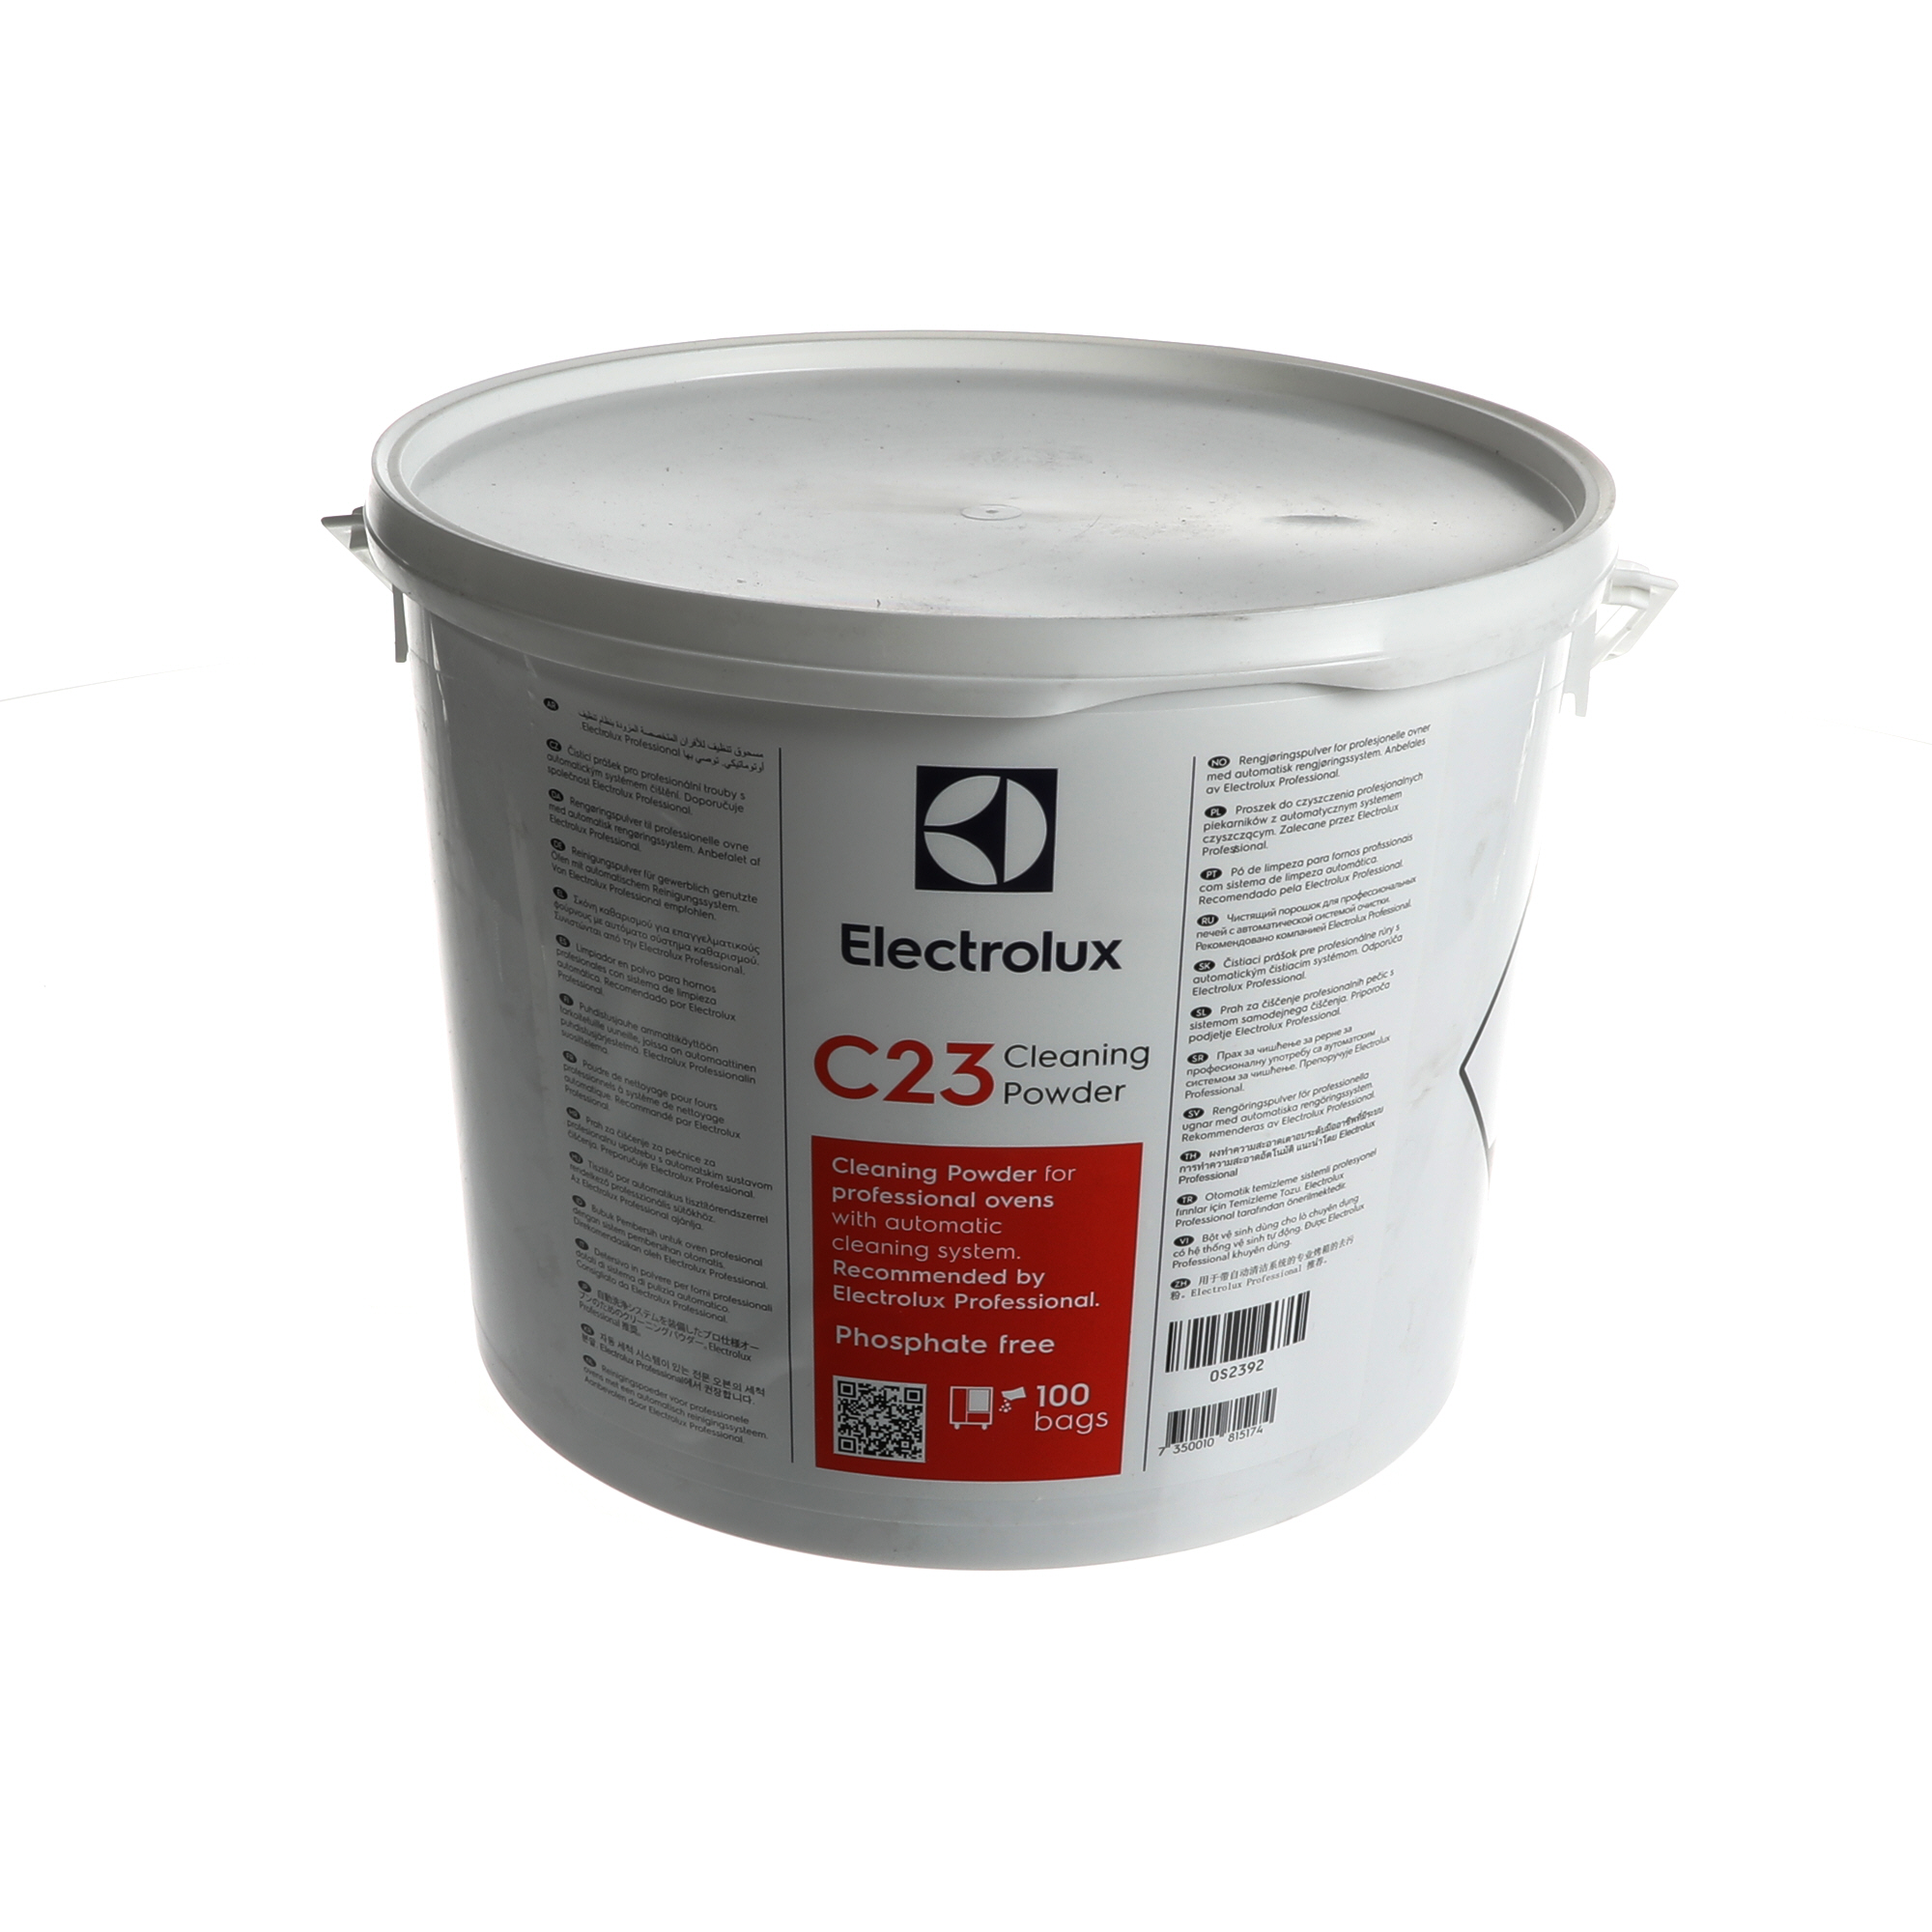 C23 Cleaning Powder